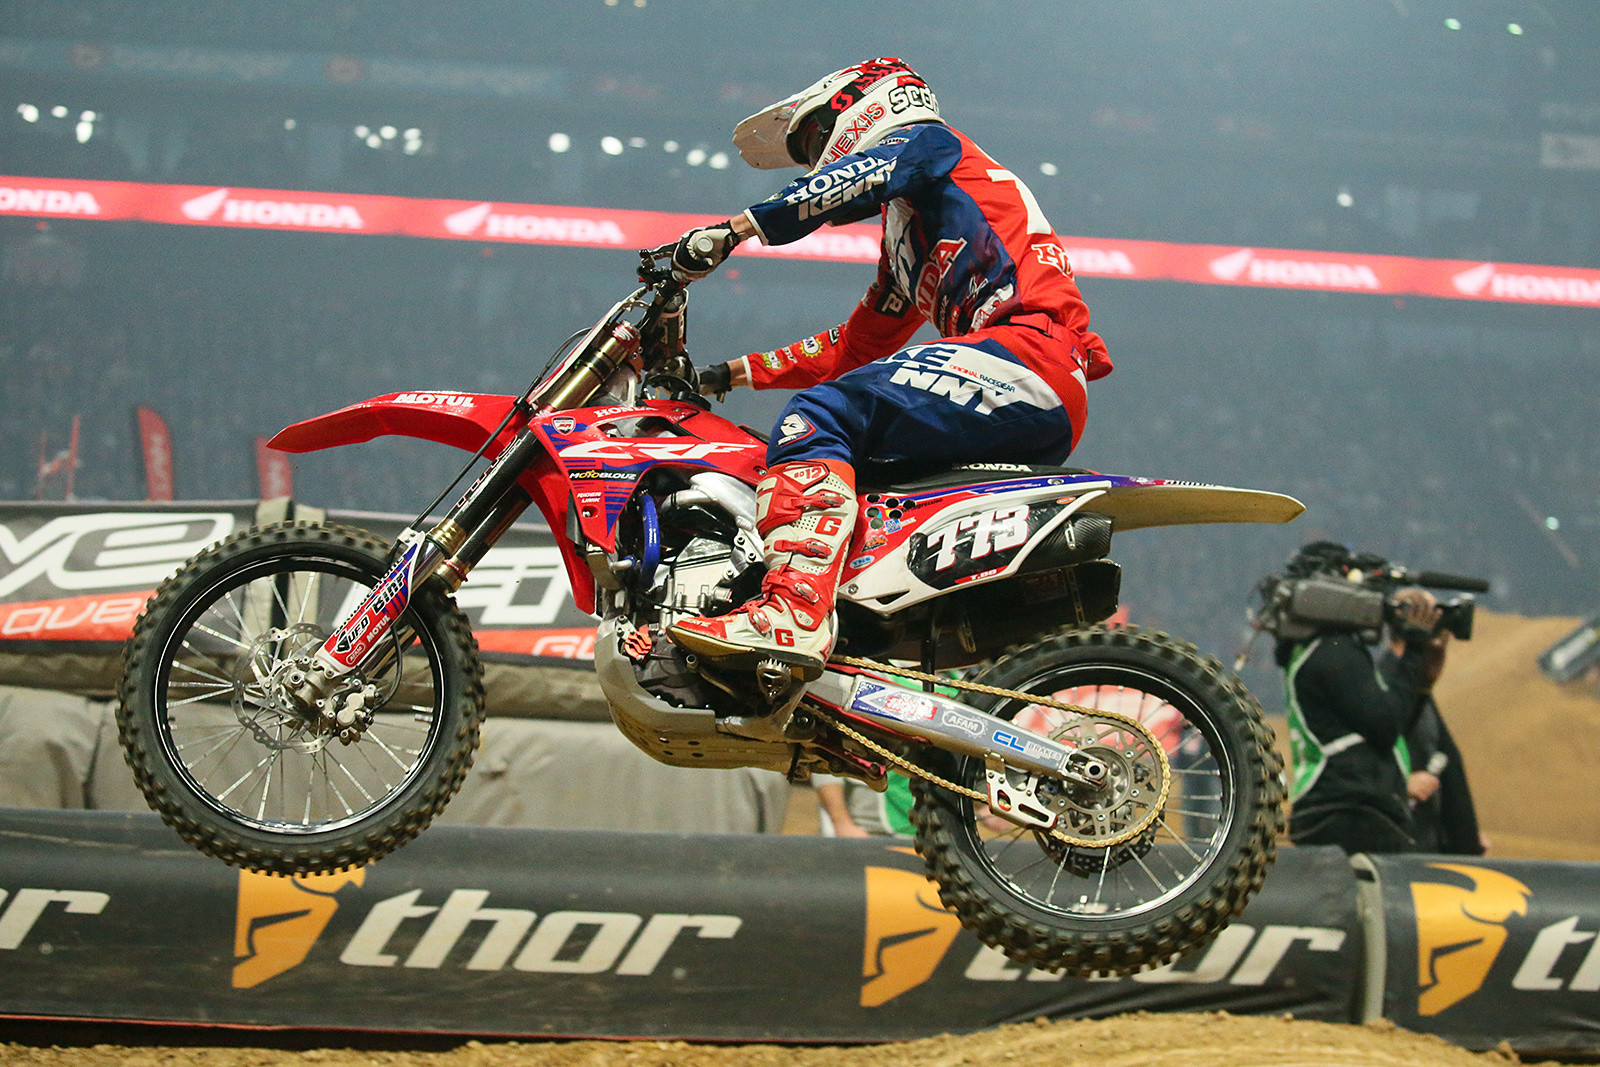 Thomas Do grabbed the first heat race win in the SX2 class.